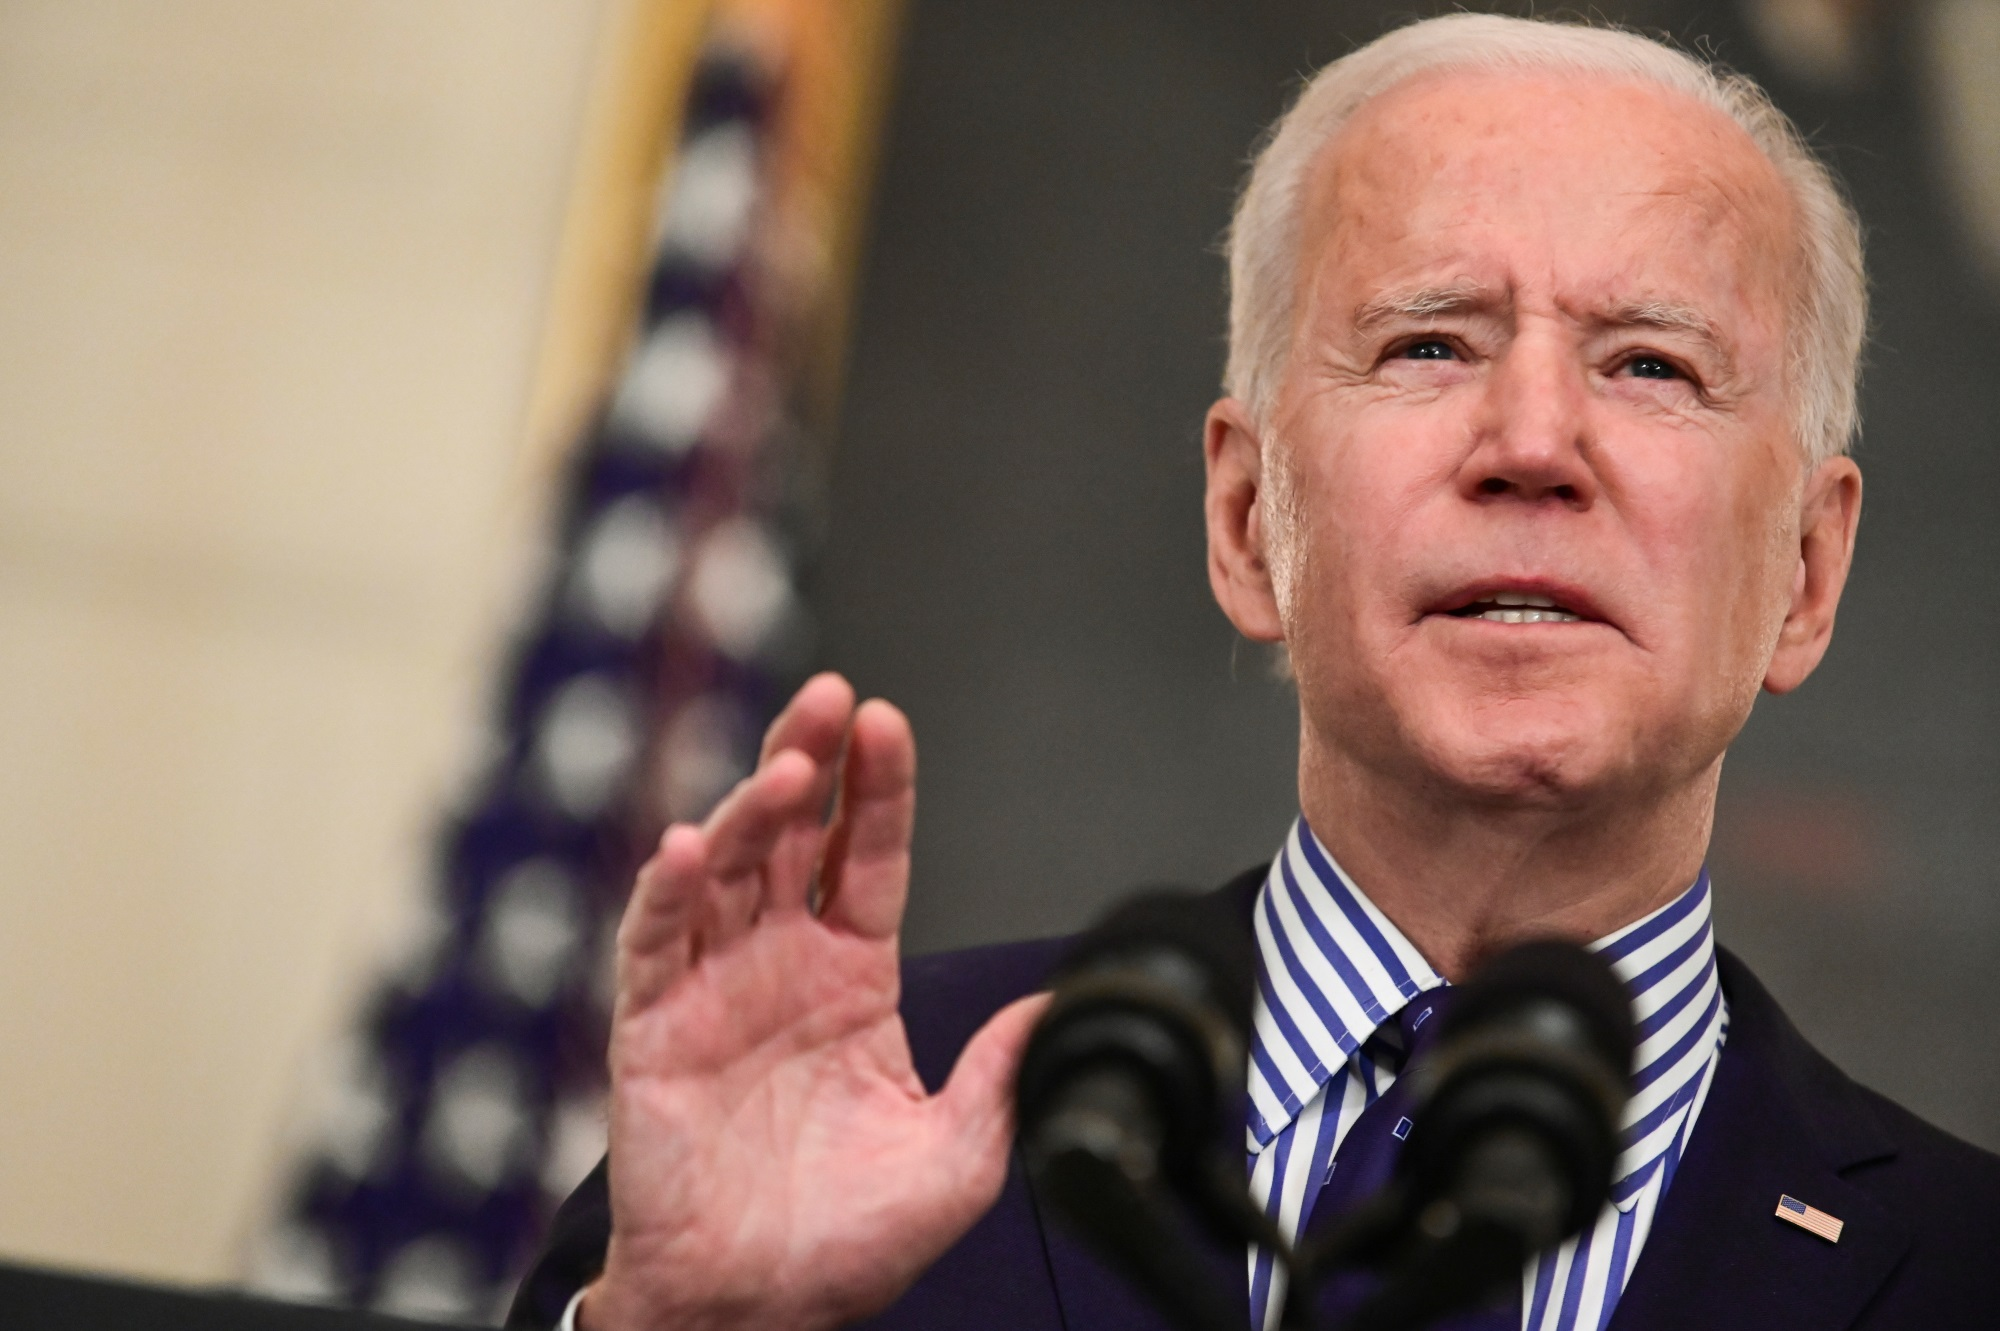 President Joe Biden says the bill will provide financial relief for many struggling Americans....